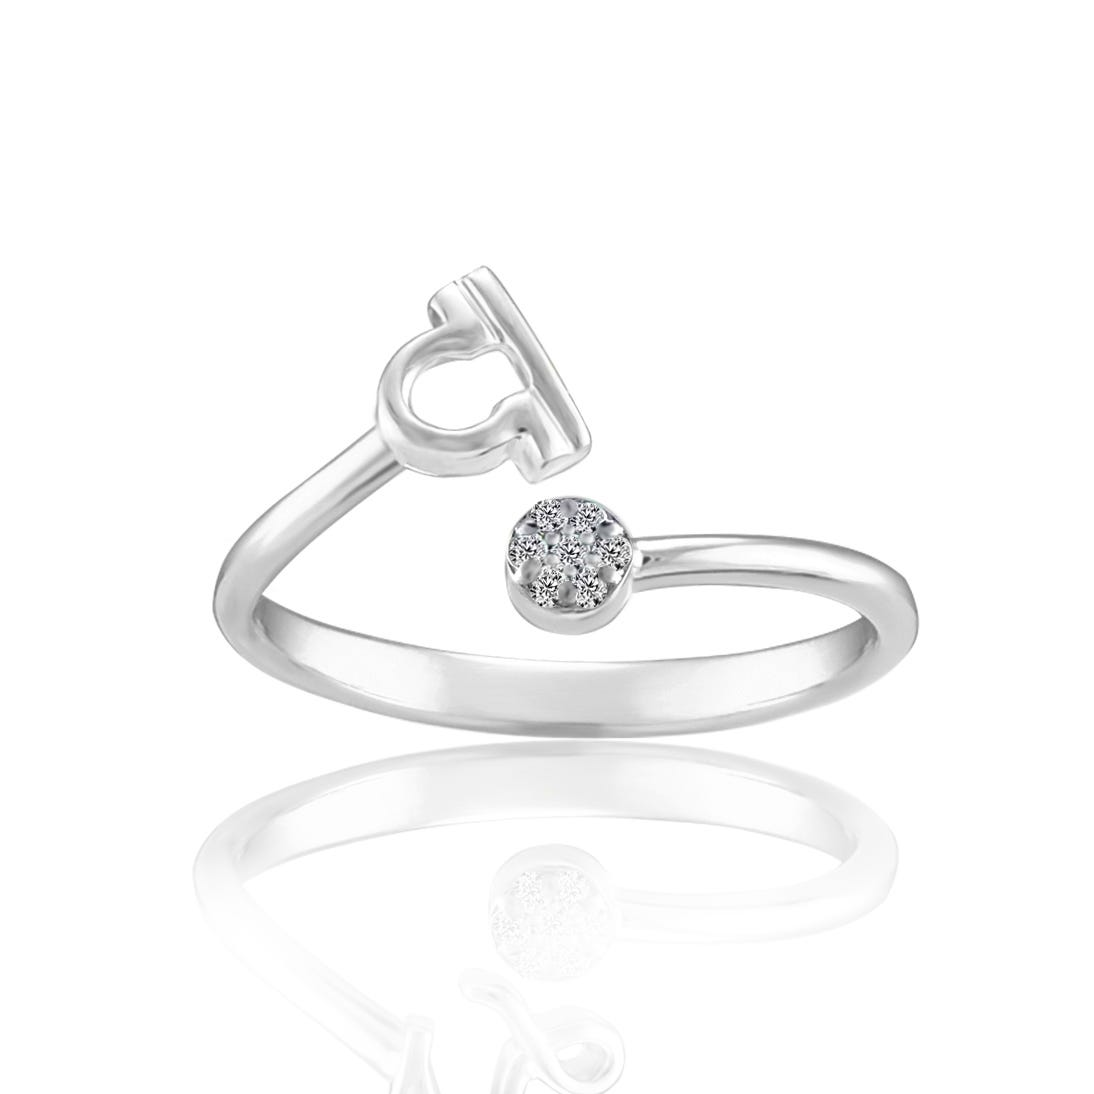 Zodiac Diamond Libra Fashion Ring in Sterling Silver